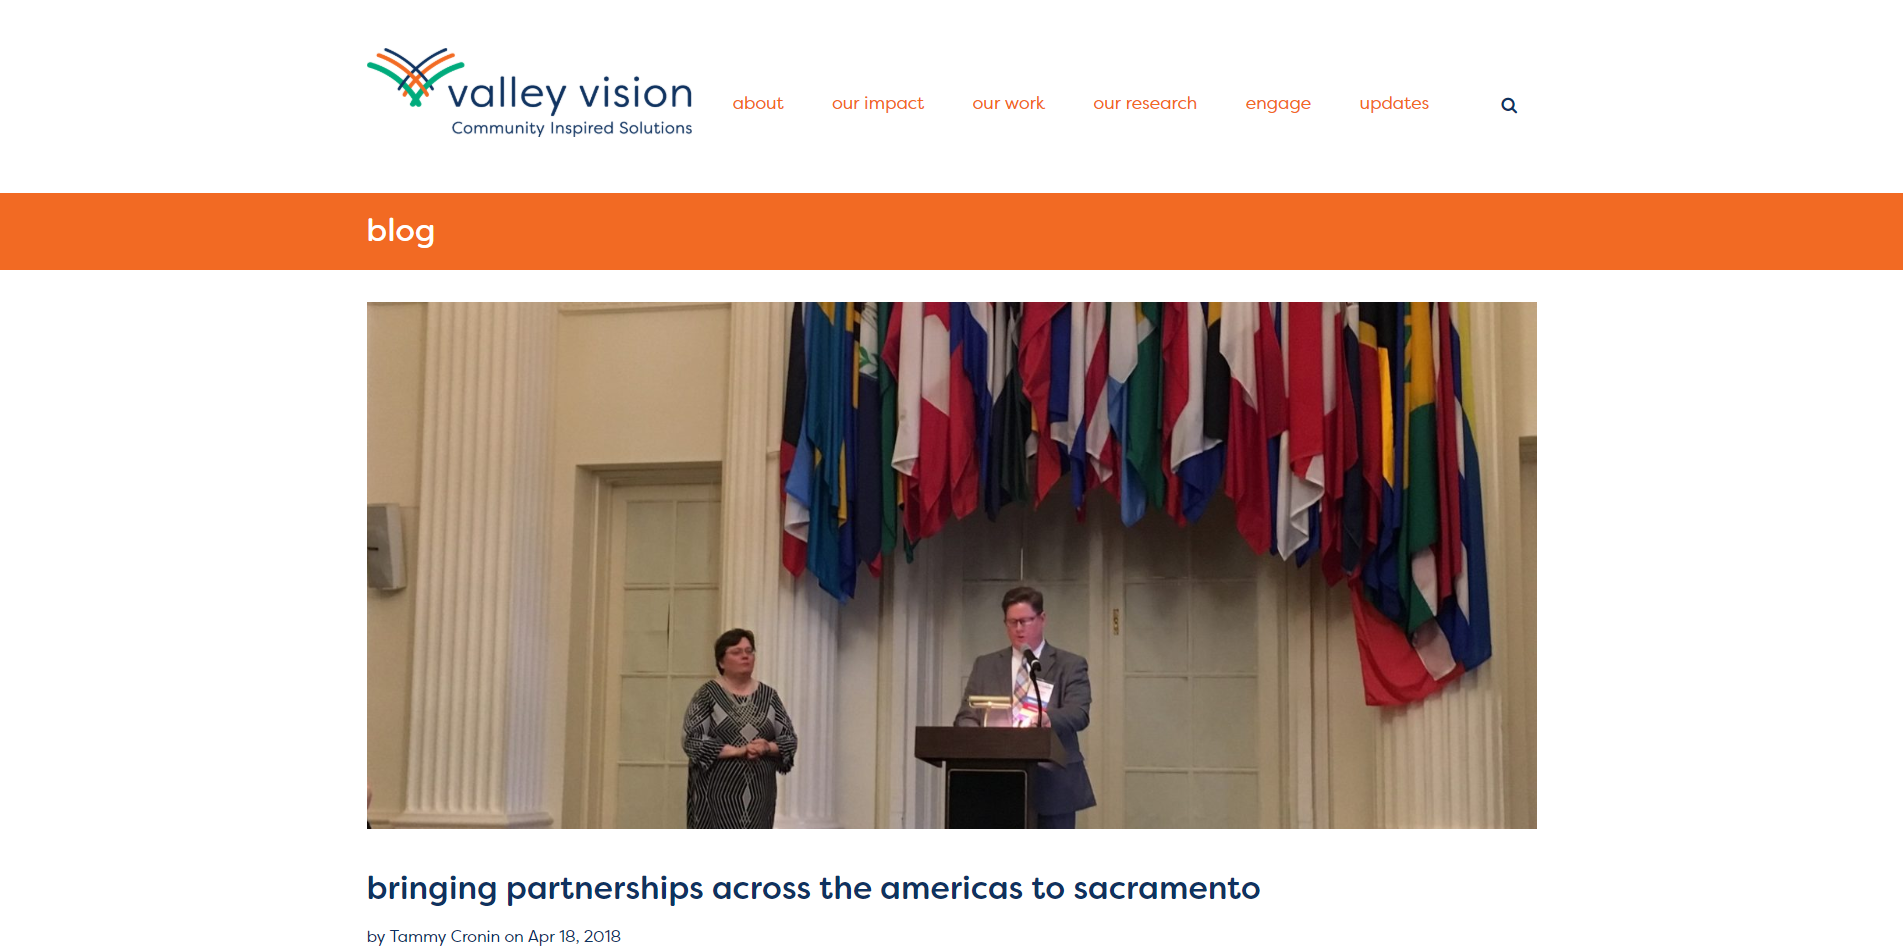 Bringing partnerships across the Americas to Sacramento